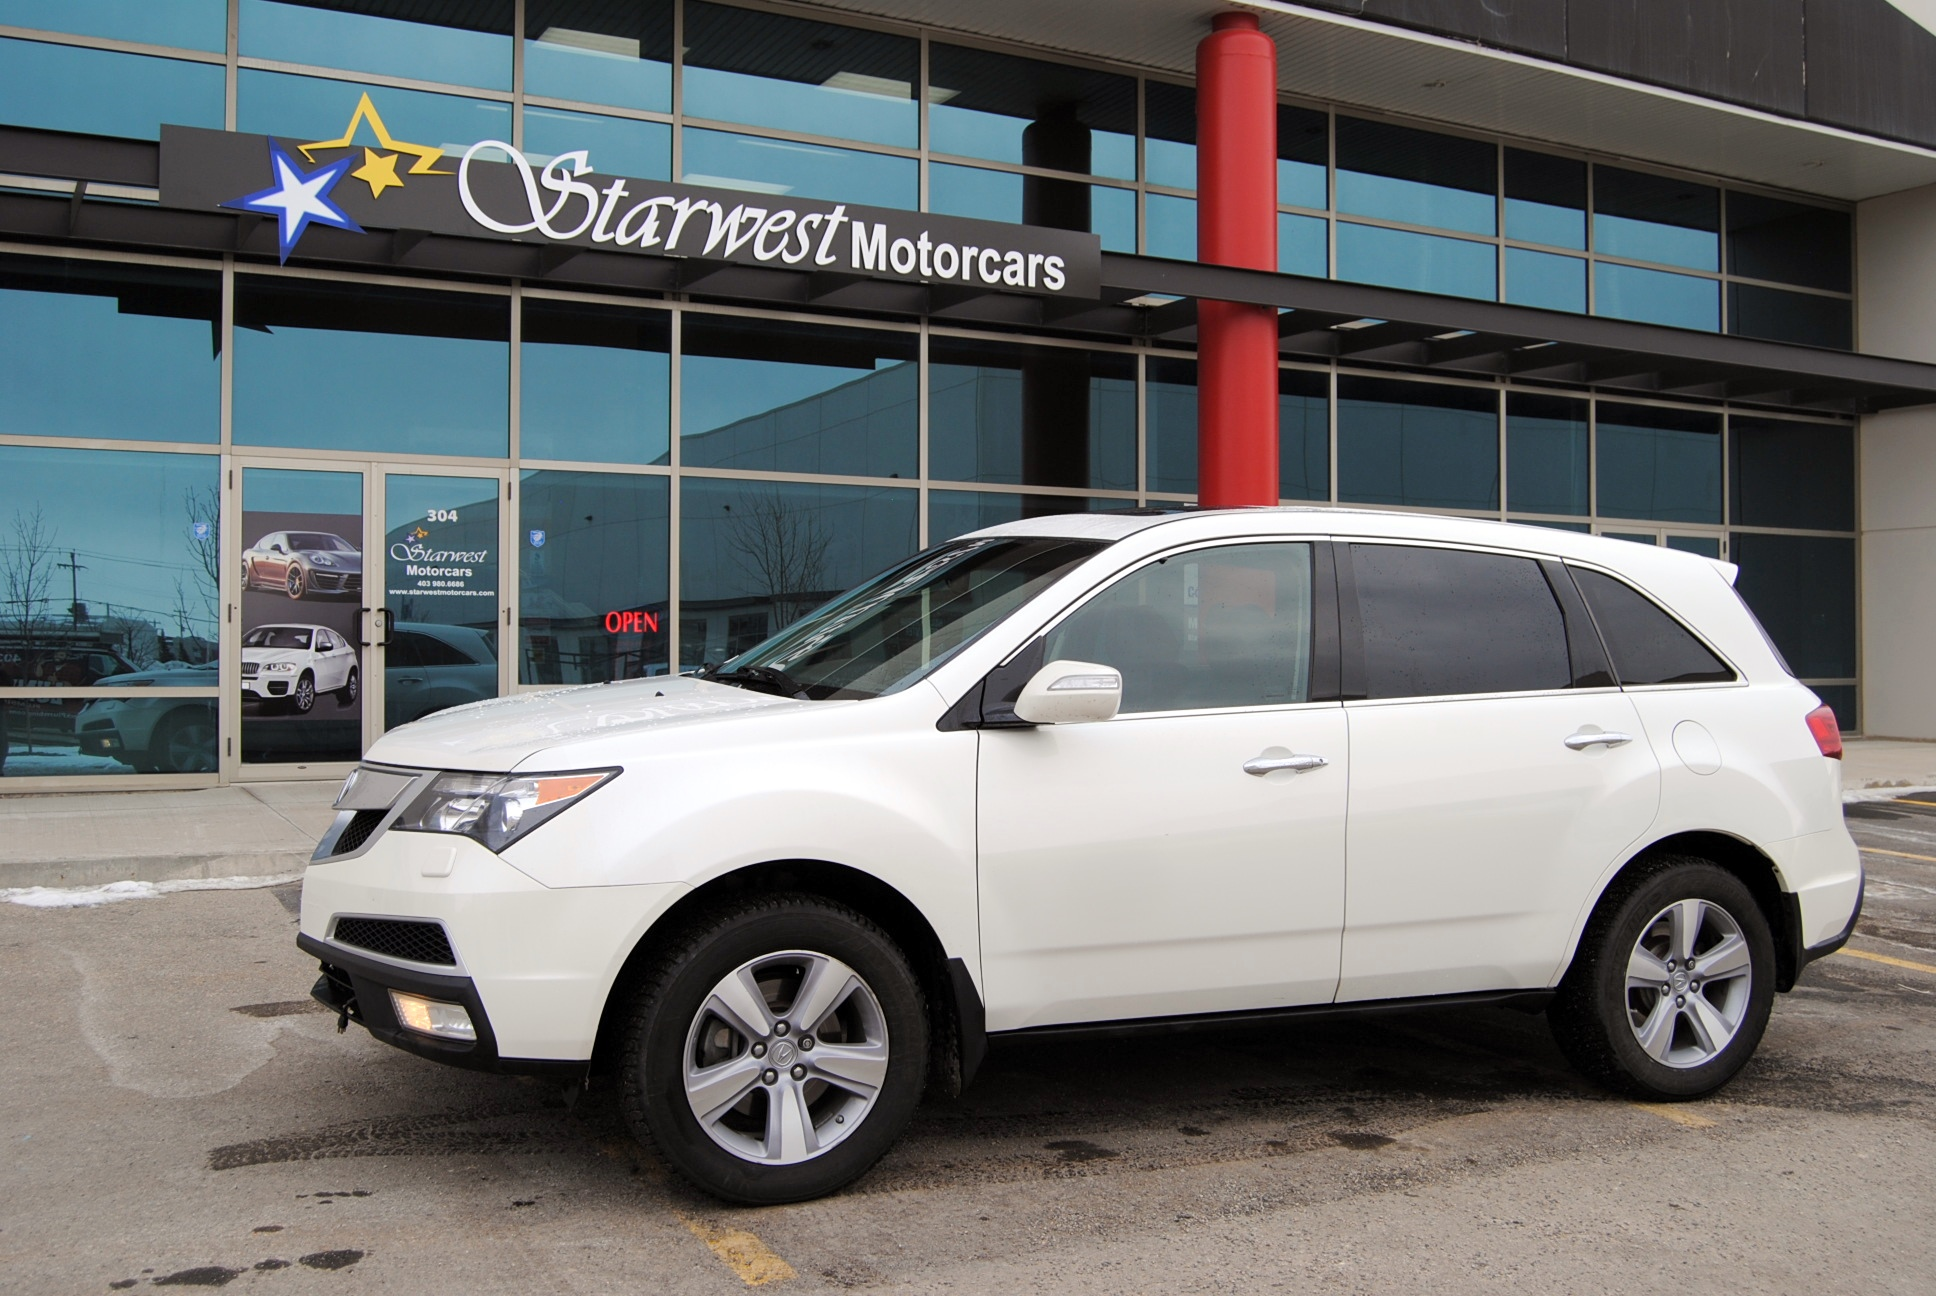 tech the acura awd l at used package car lot mdx detail internet technology serving pkg